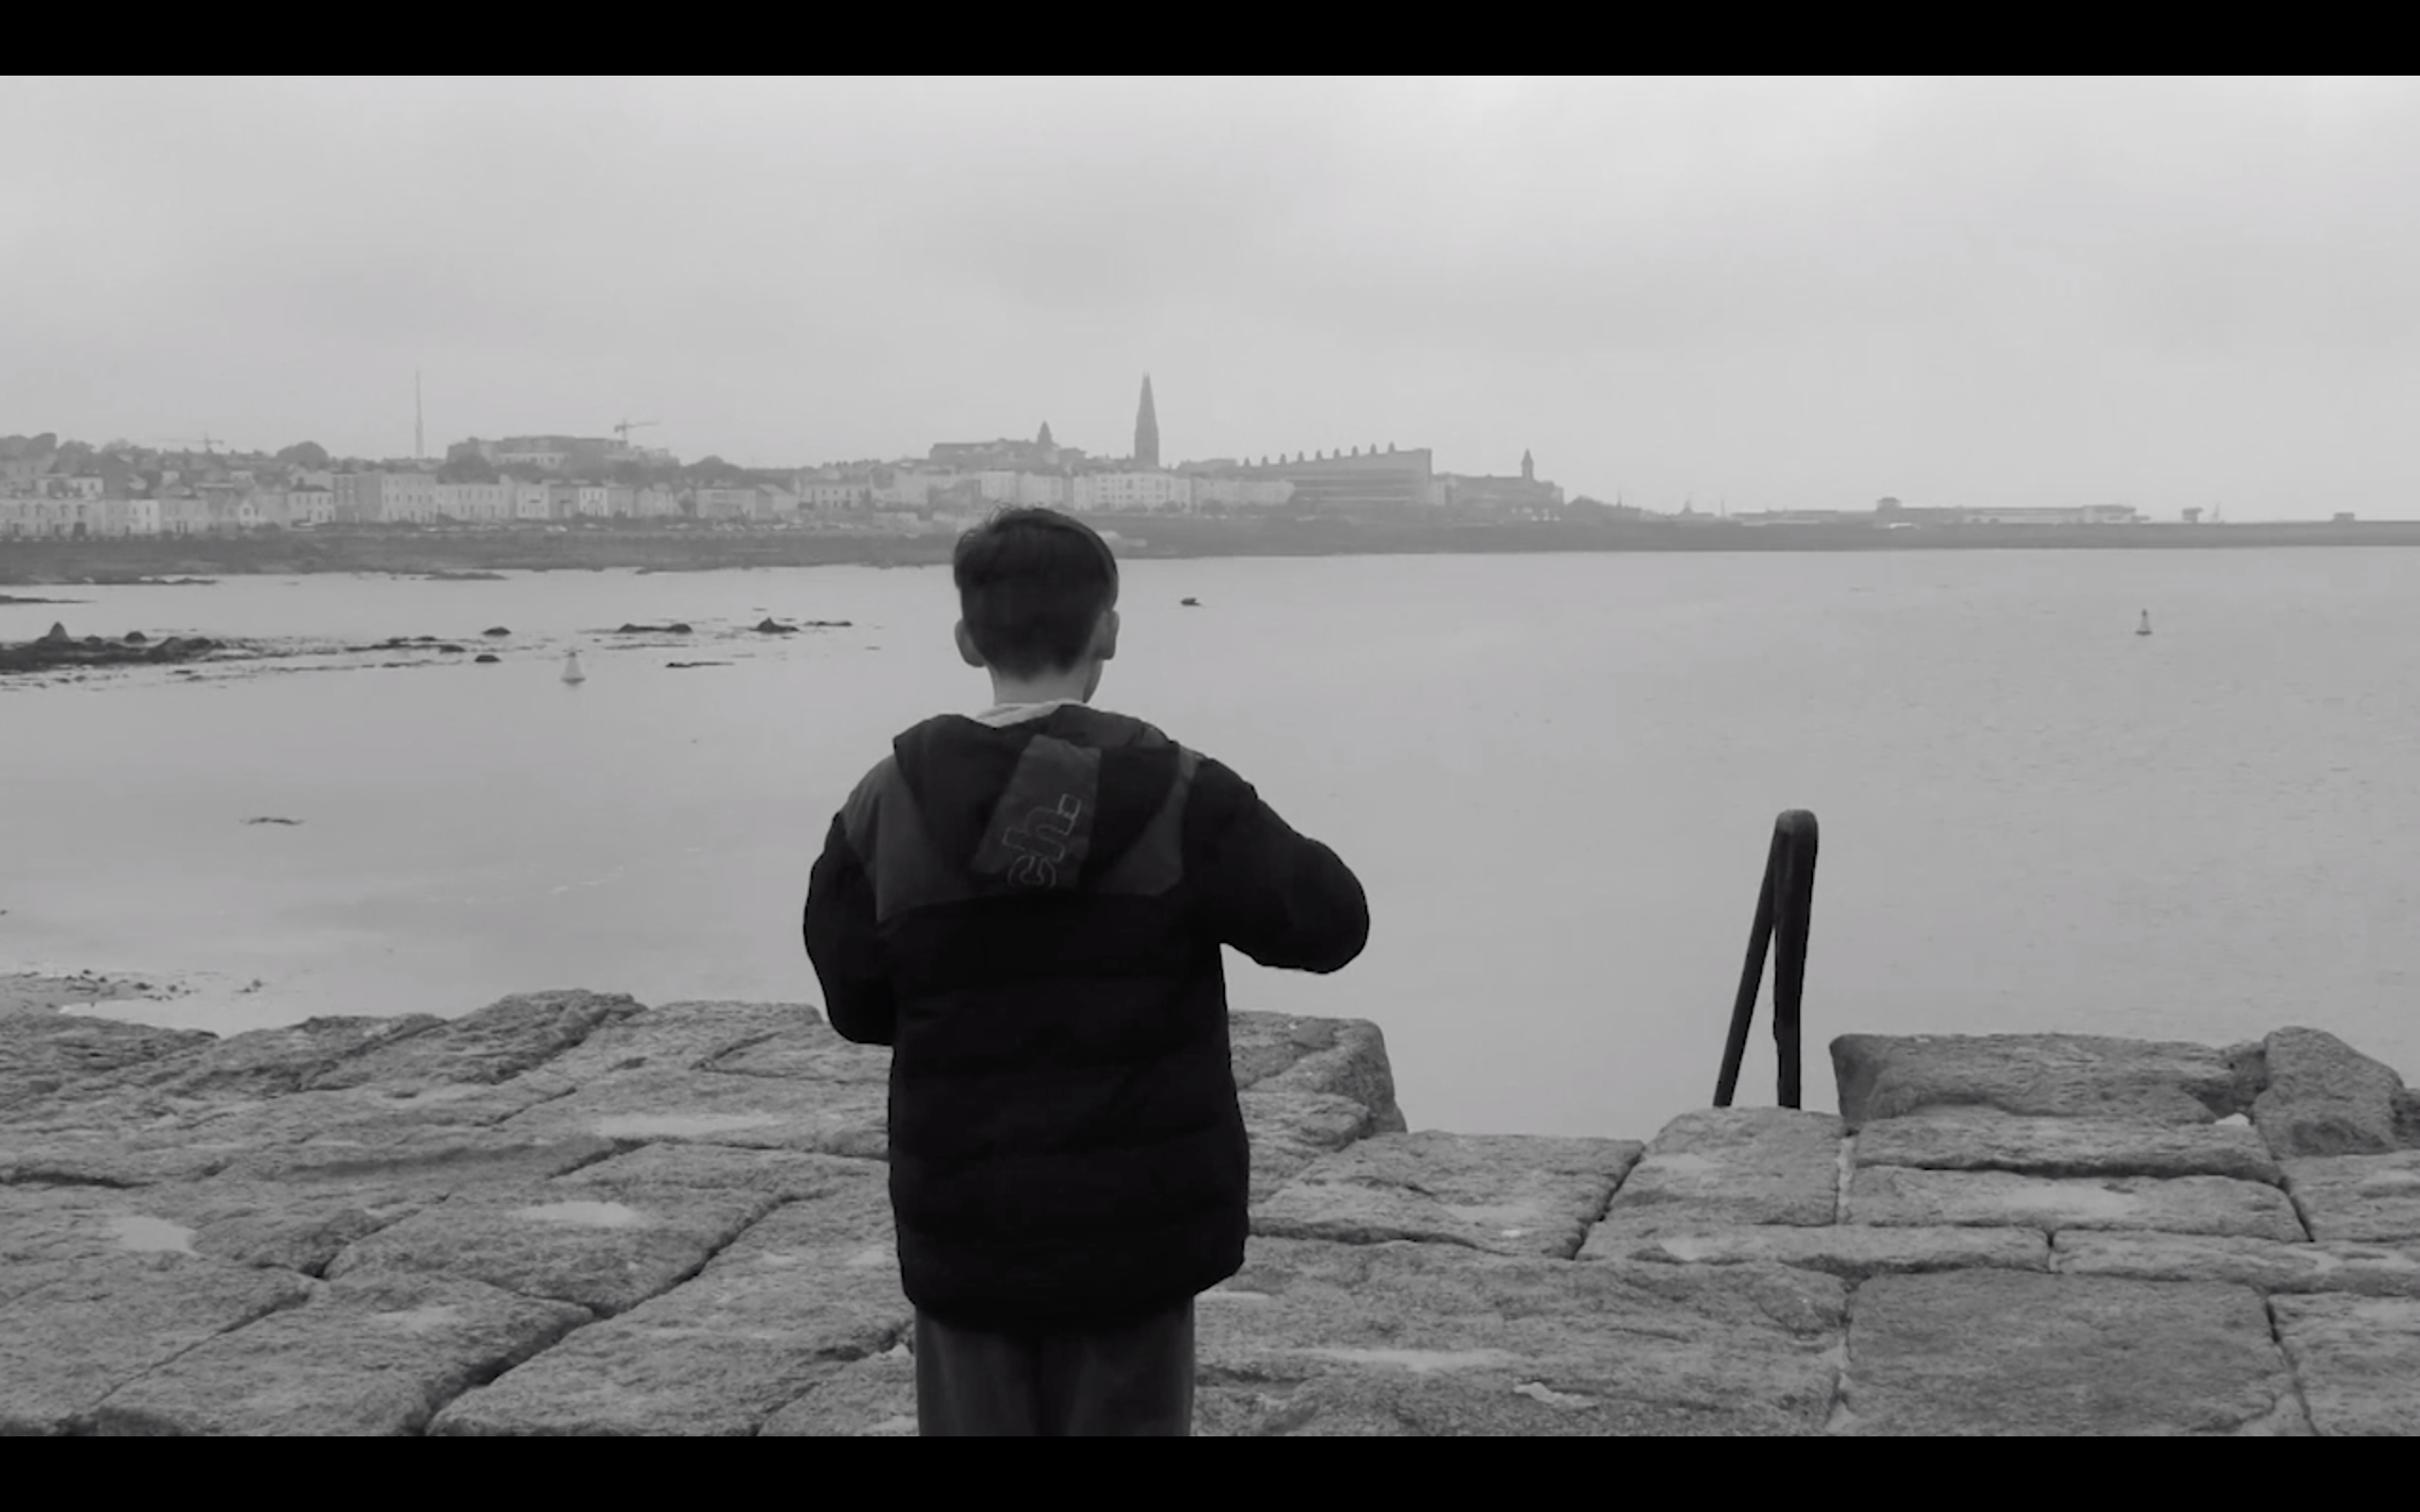 Image of boy with back to camera facing Dún Laoghaire